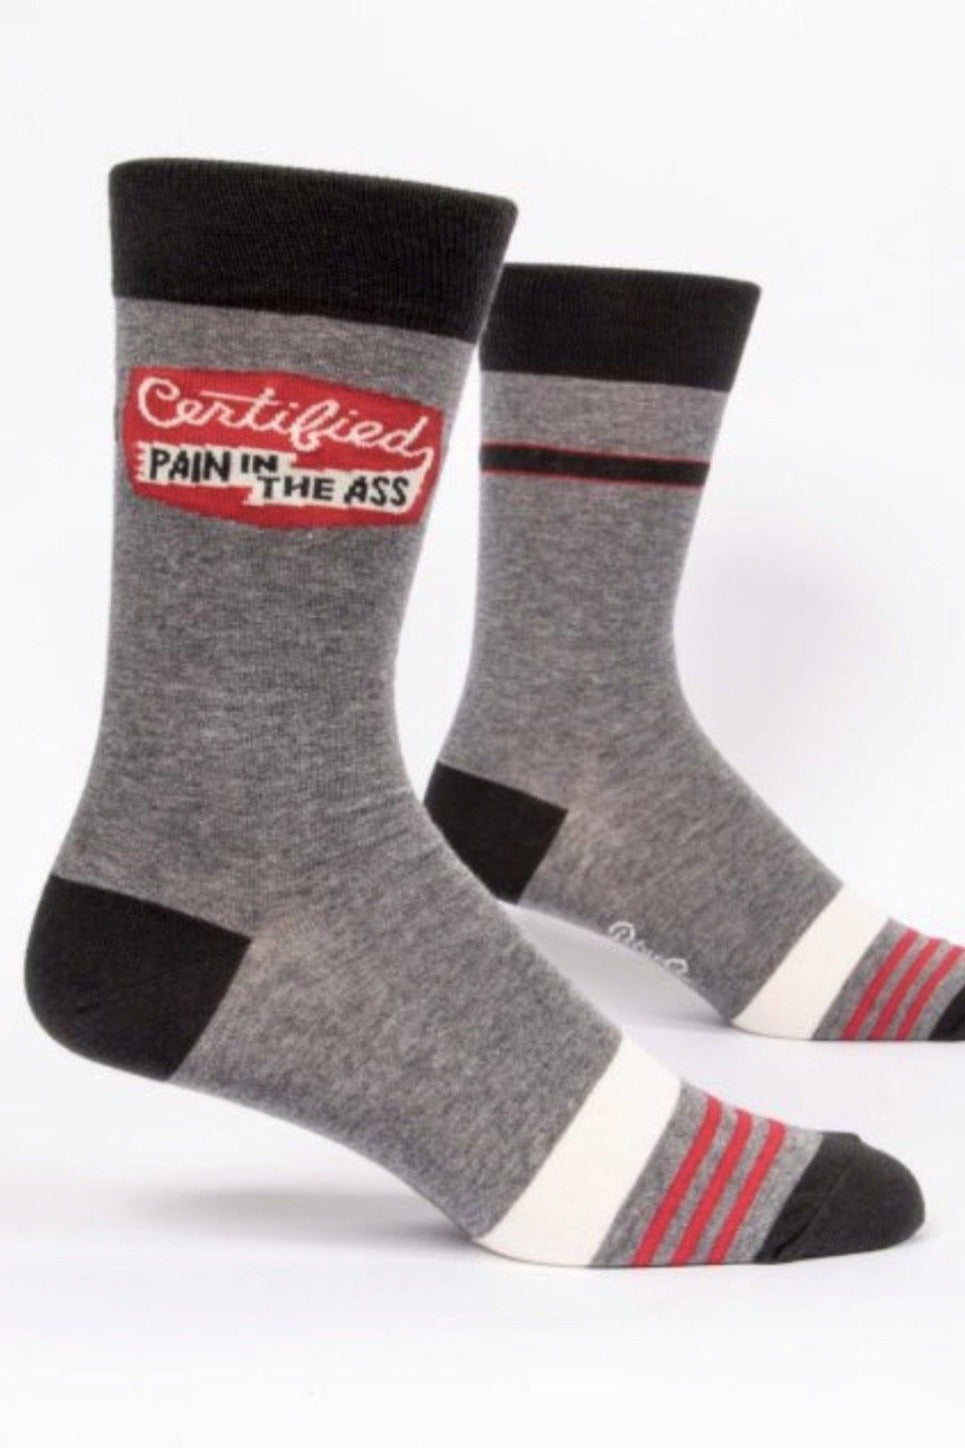 Certified Pain in the Ass Men's Sock